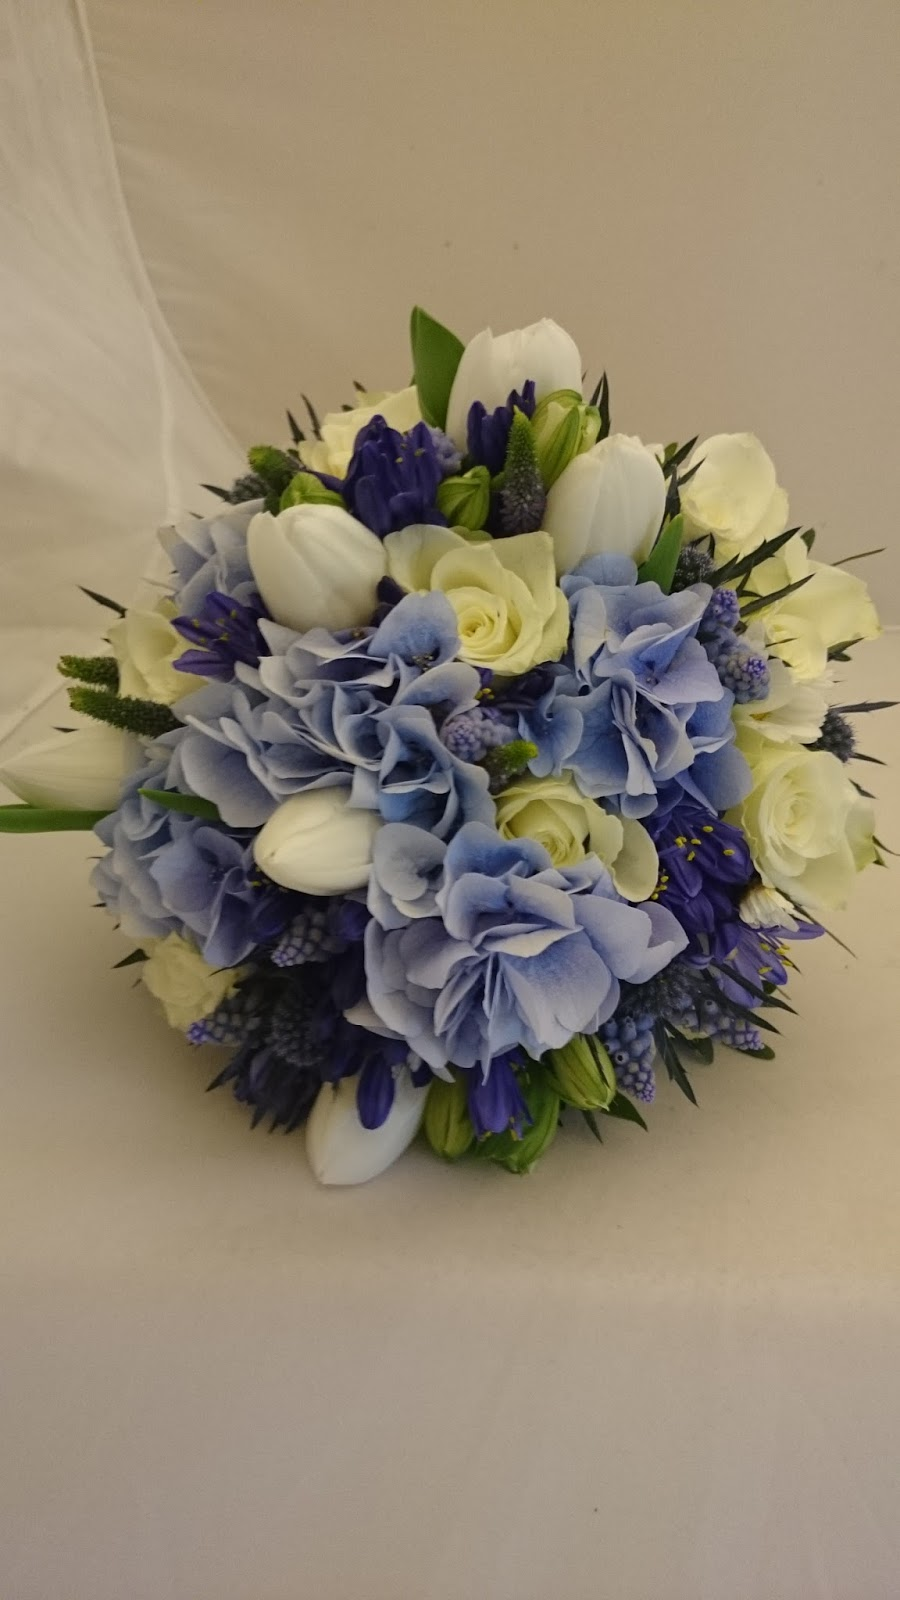 Flowers Included White Tulips And Alstroemeria Small Ivory Roses Blue Hydrangea Muscari Thistle Agapanthus Veronica